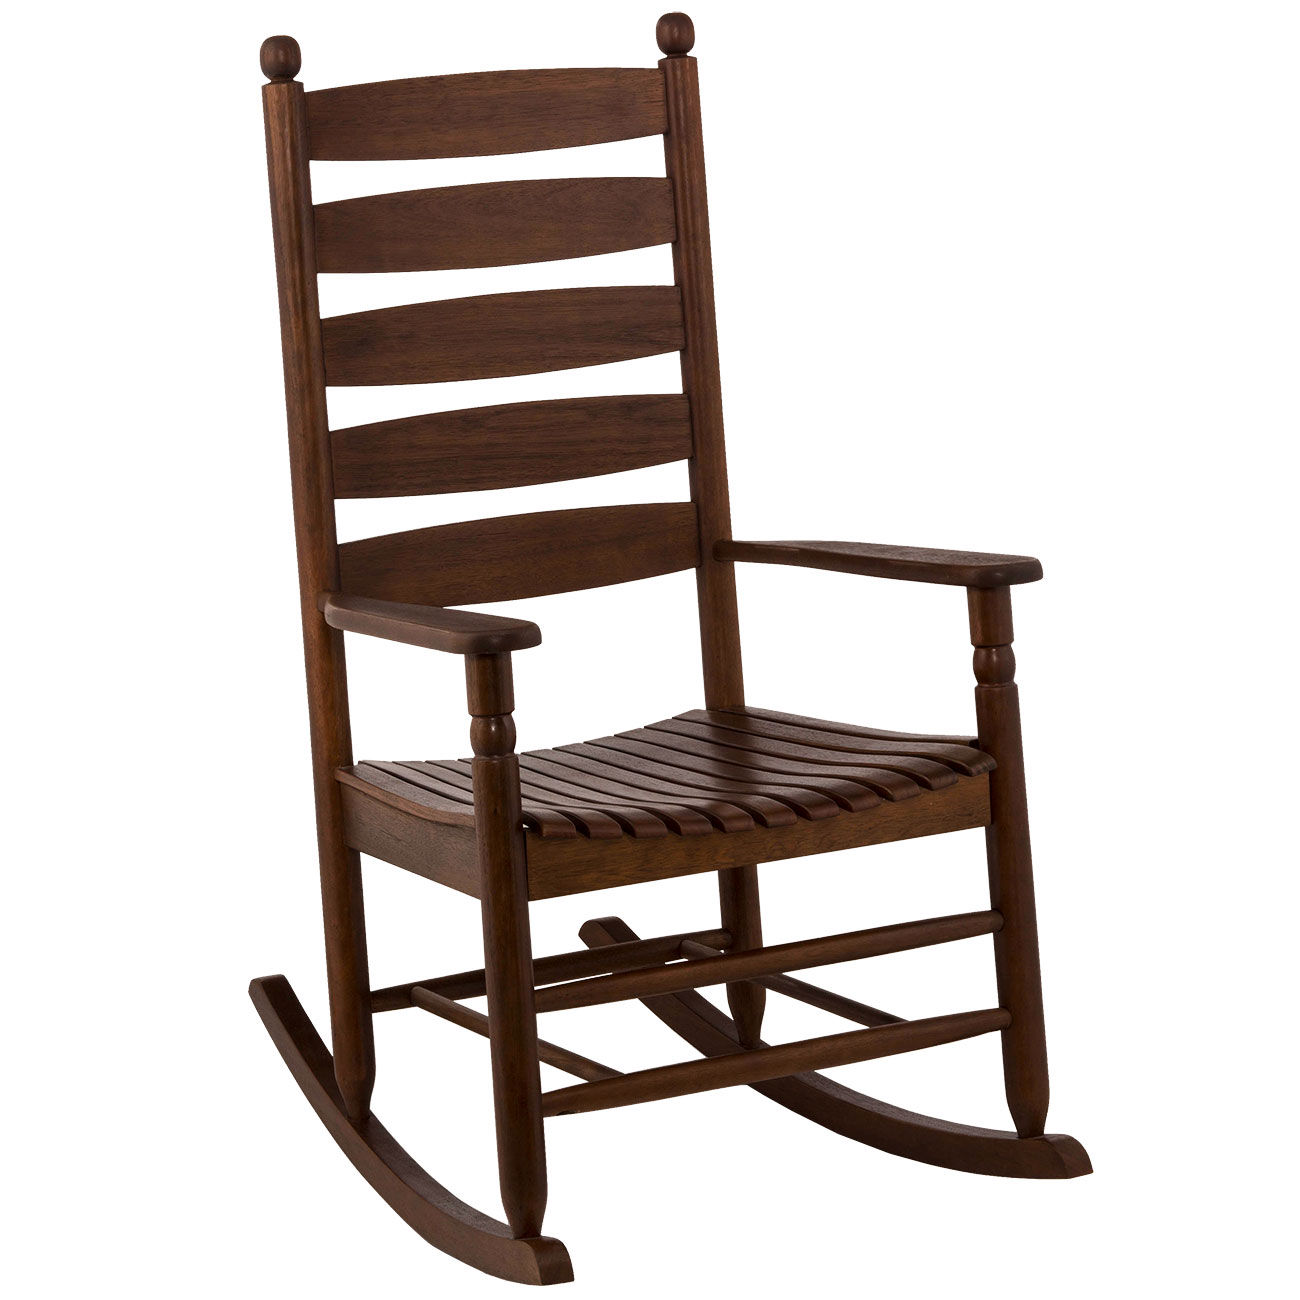 cracker barrel rocking chair reviews how to adjust aeron indoor wooden chairs old country store ladderback rocker walnut